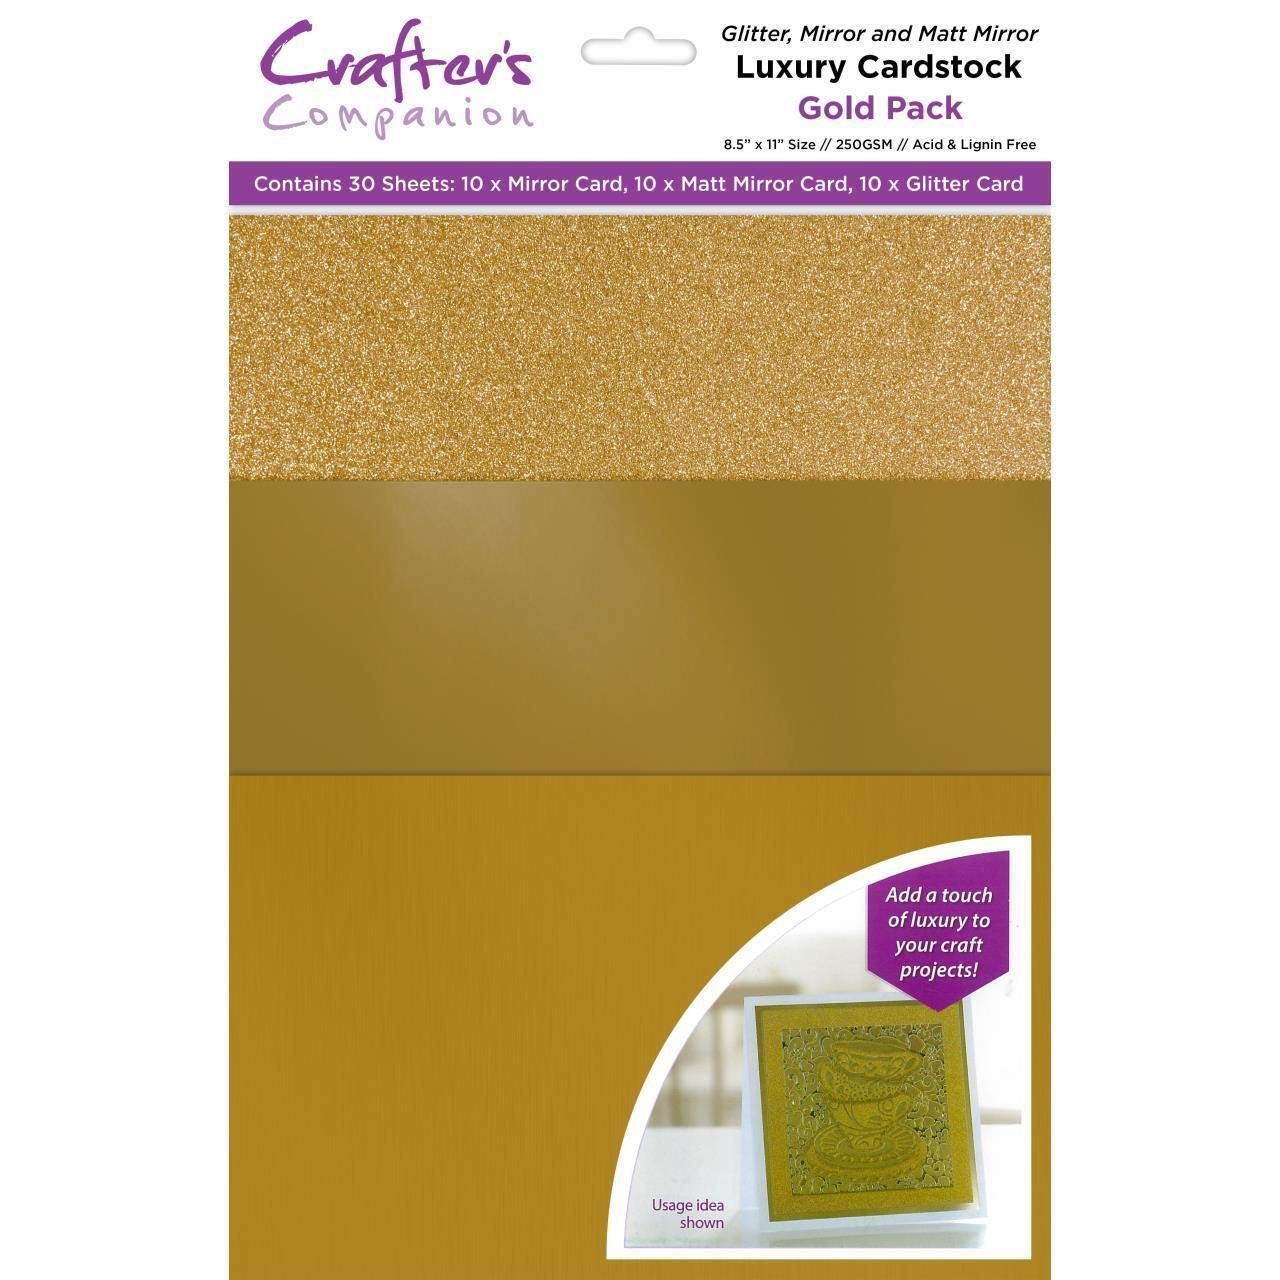 Crafters Companion CP-LMIX-GOLD811 Mixed Card Pack-Gold Luxury Cardstock,